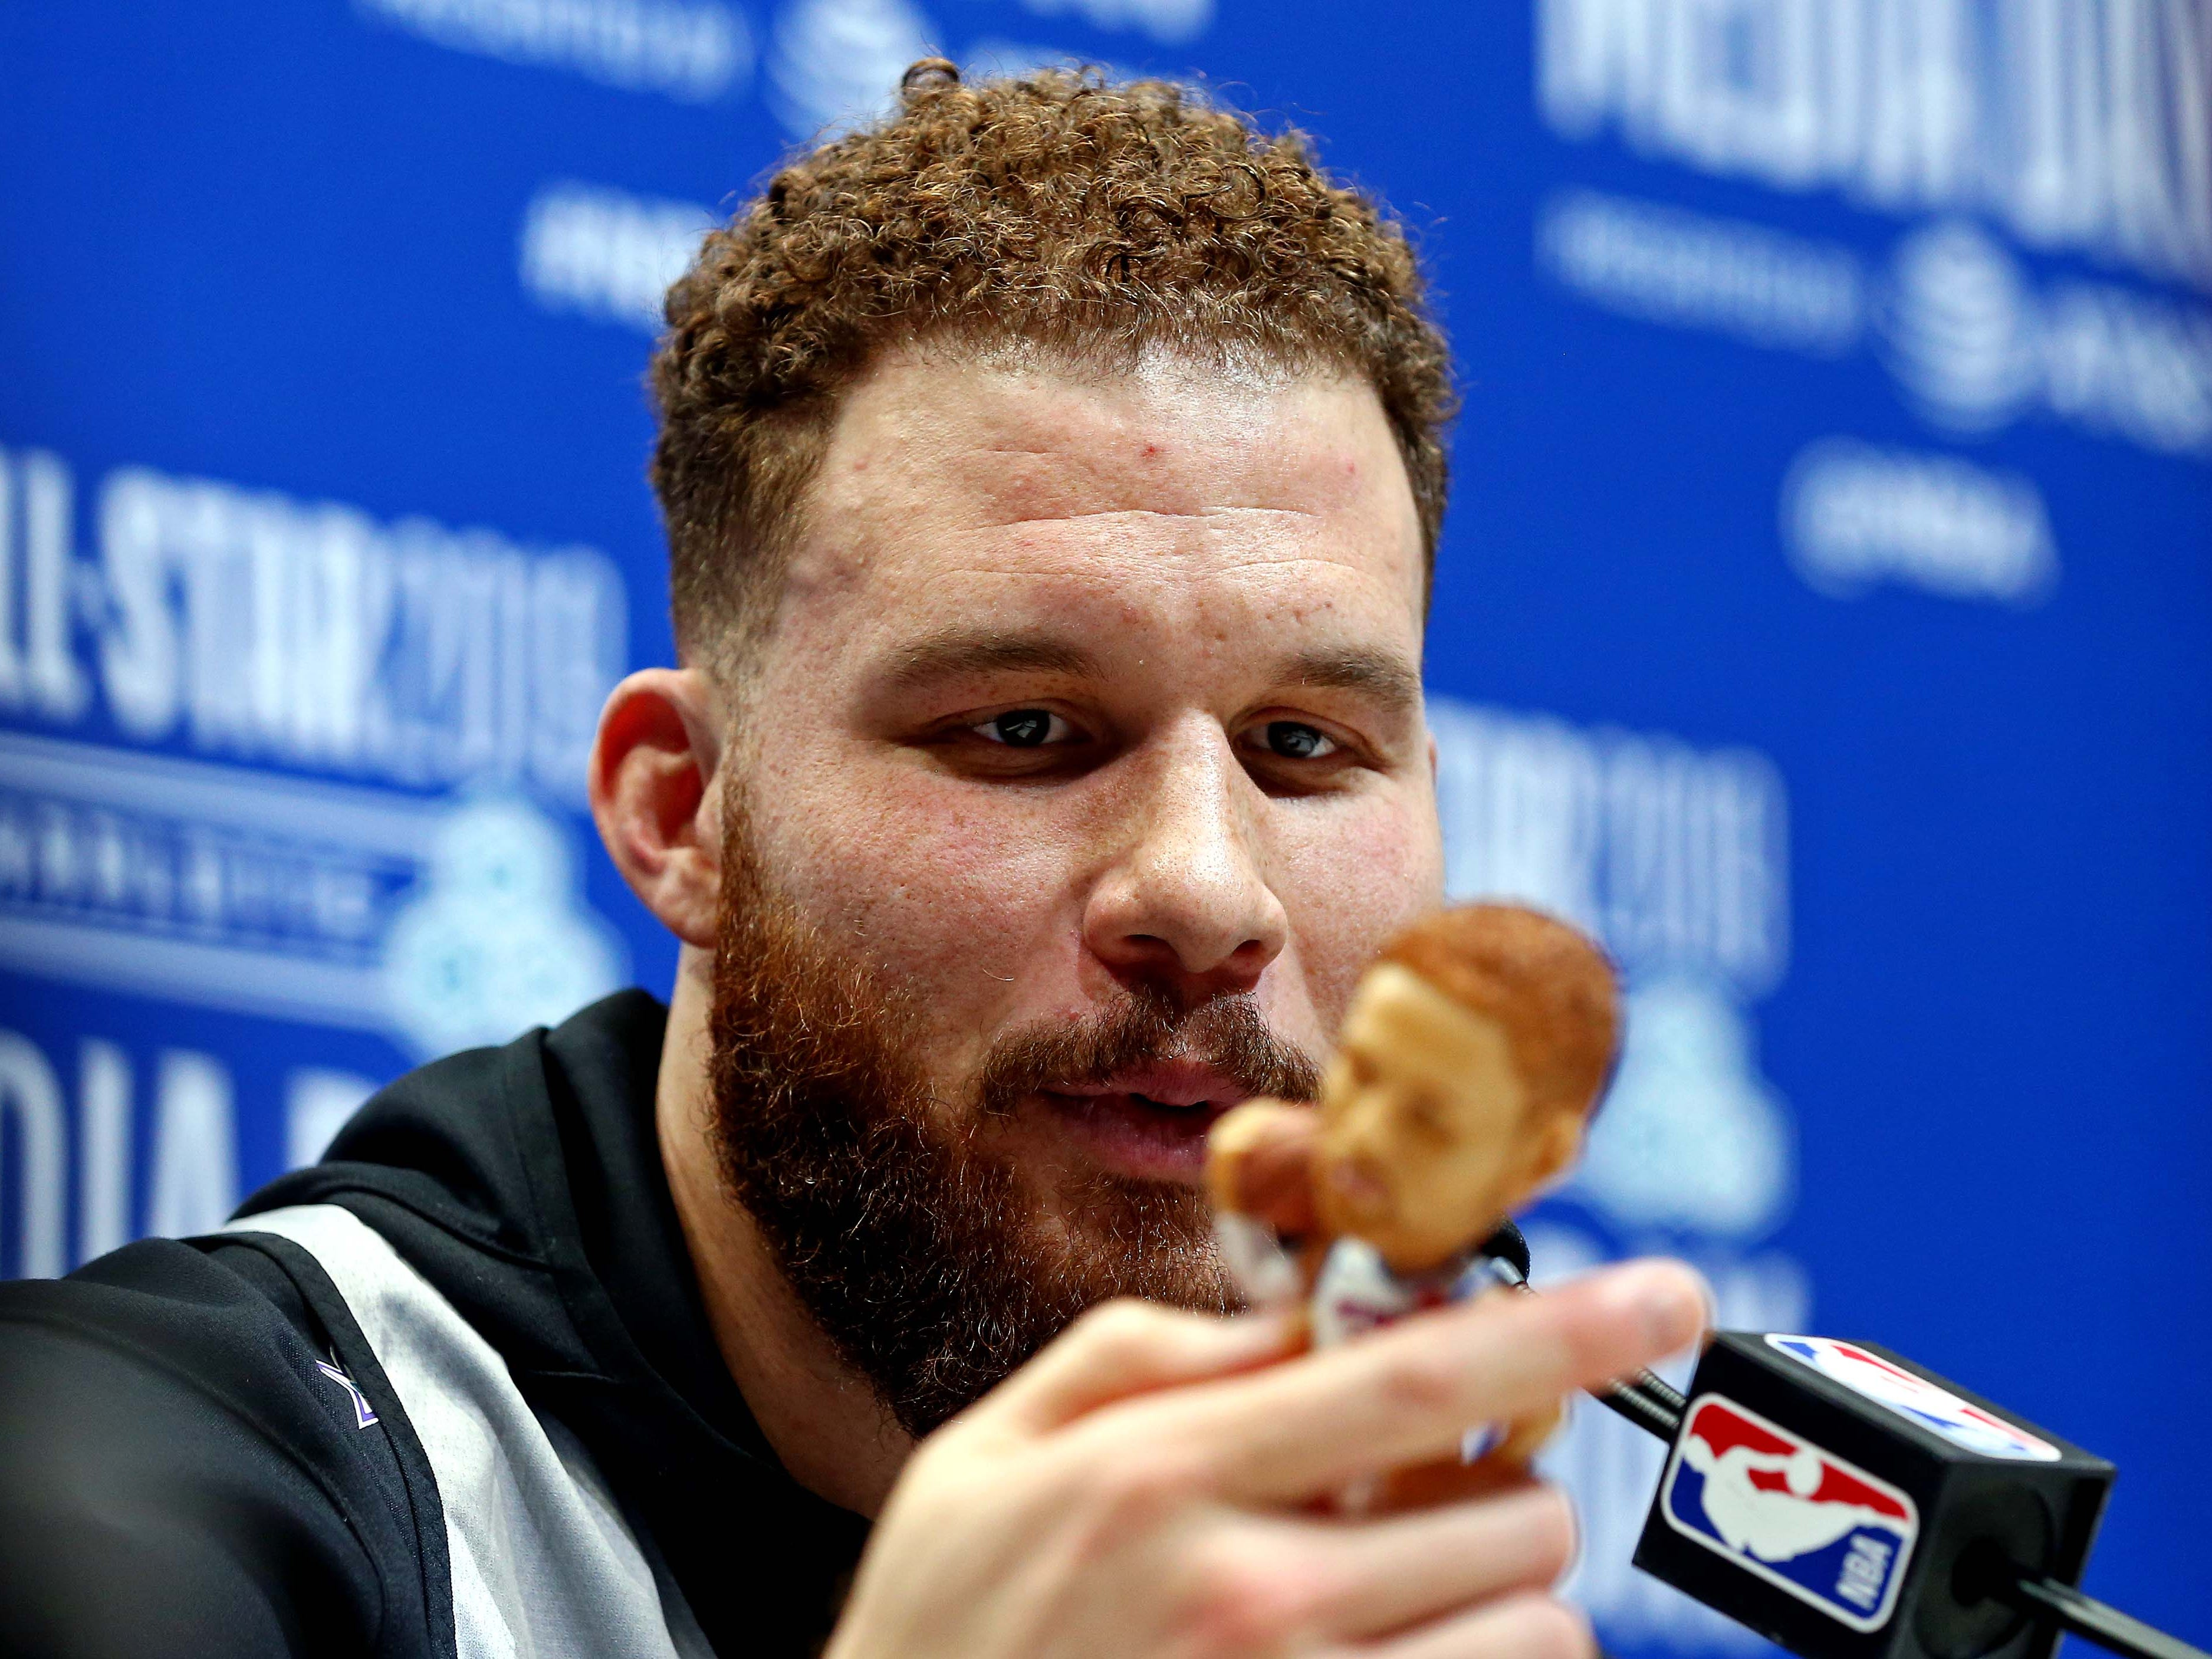 Blake Griffin looks at a bobblehead of himself during NBA All-Star Media Day.